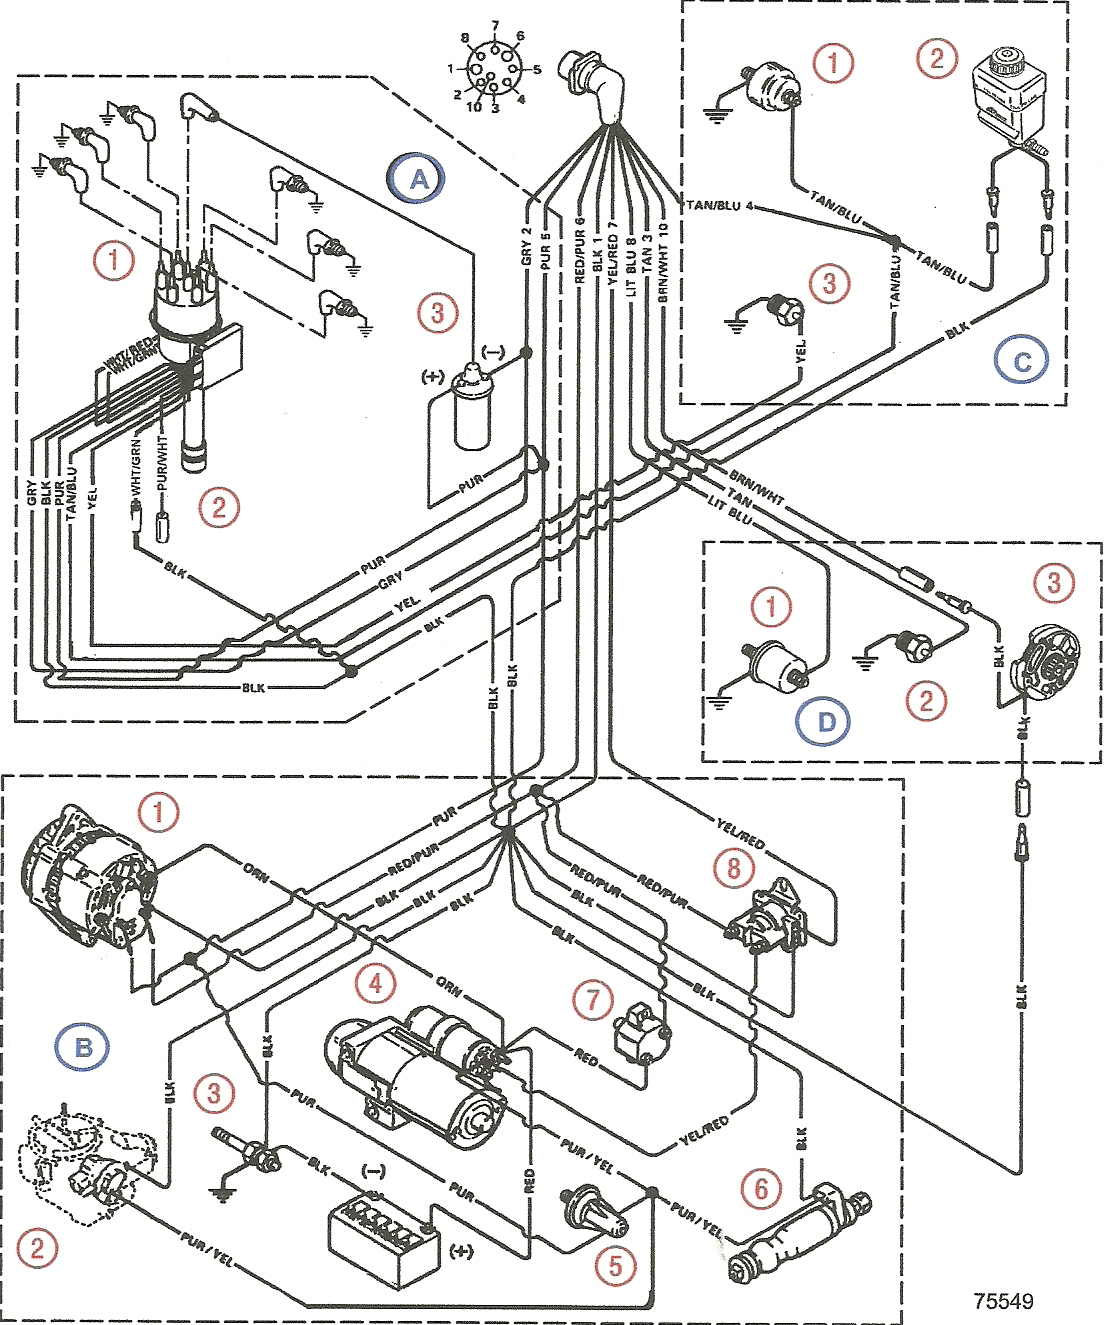 1996 Mercruiser 5.7 Wiring Diagram